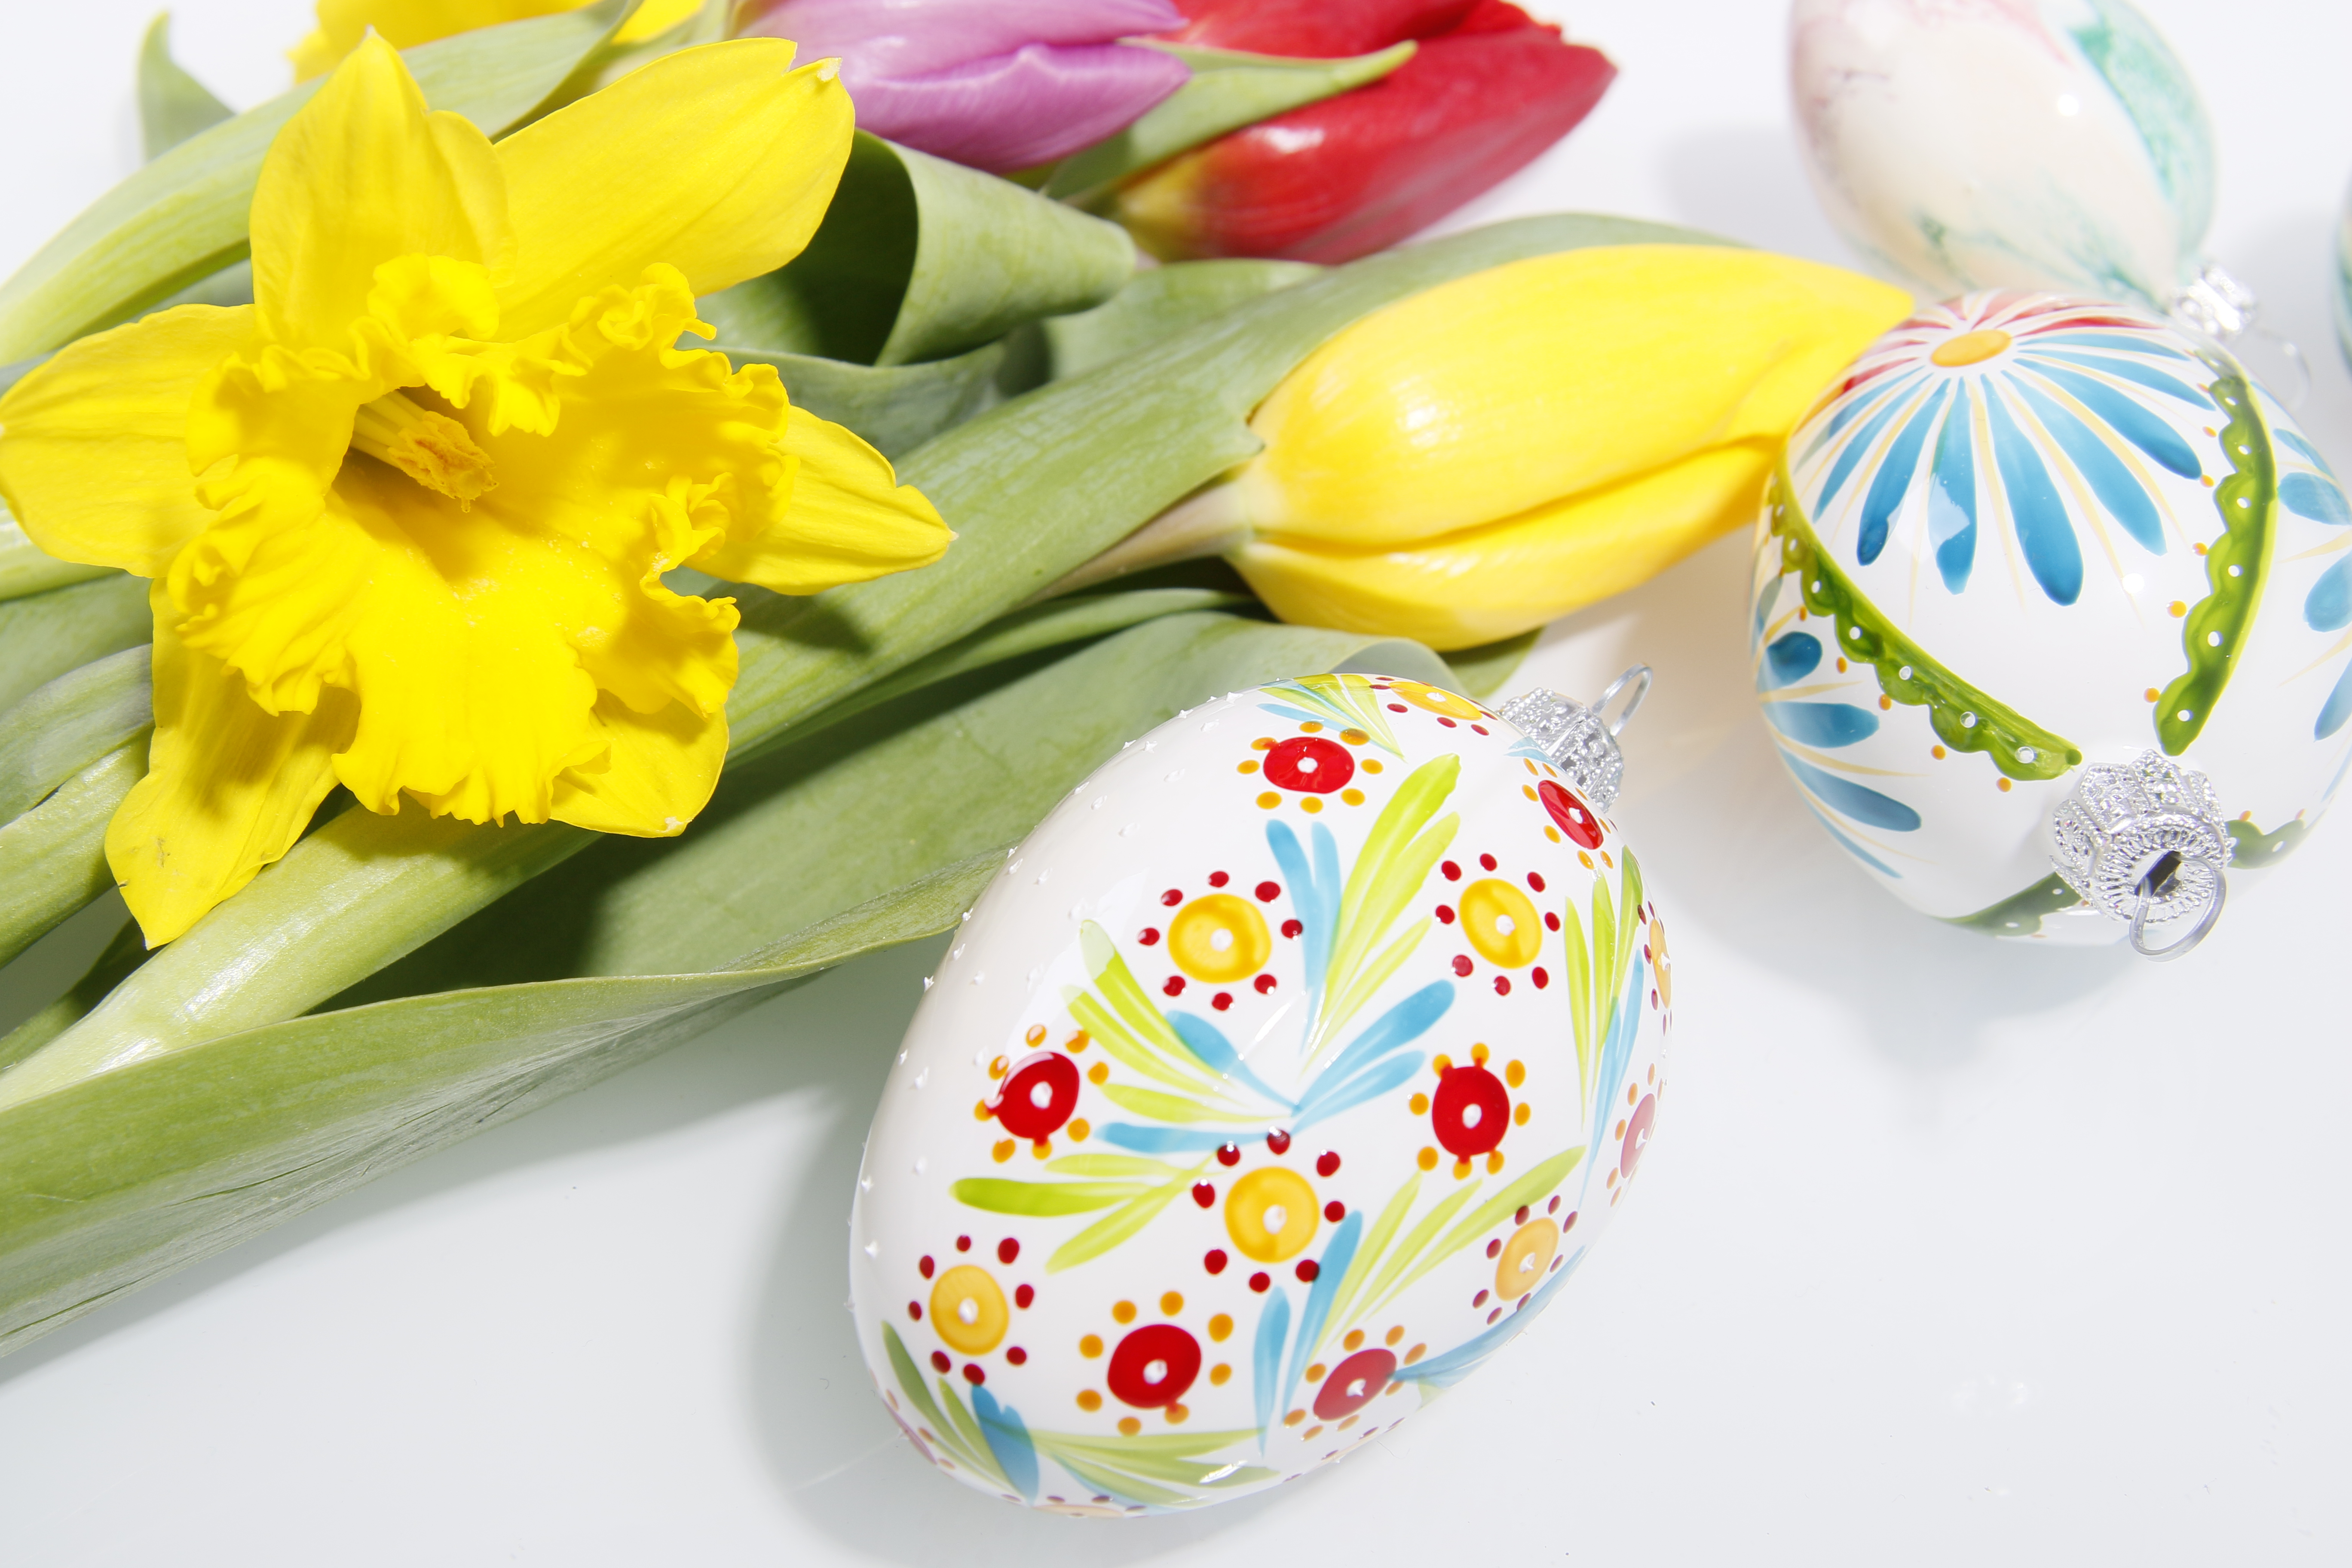 ideas living gumball country seasonal spring easy crafts to decorations how machine decoration diy holiday decor gifts bunnies easter craft fun for stuff